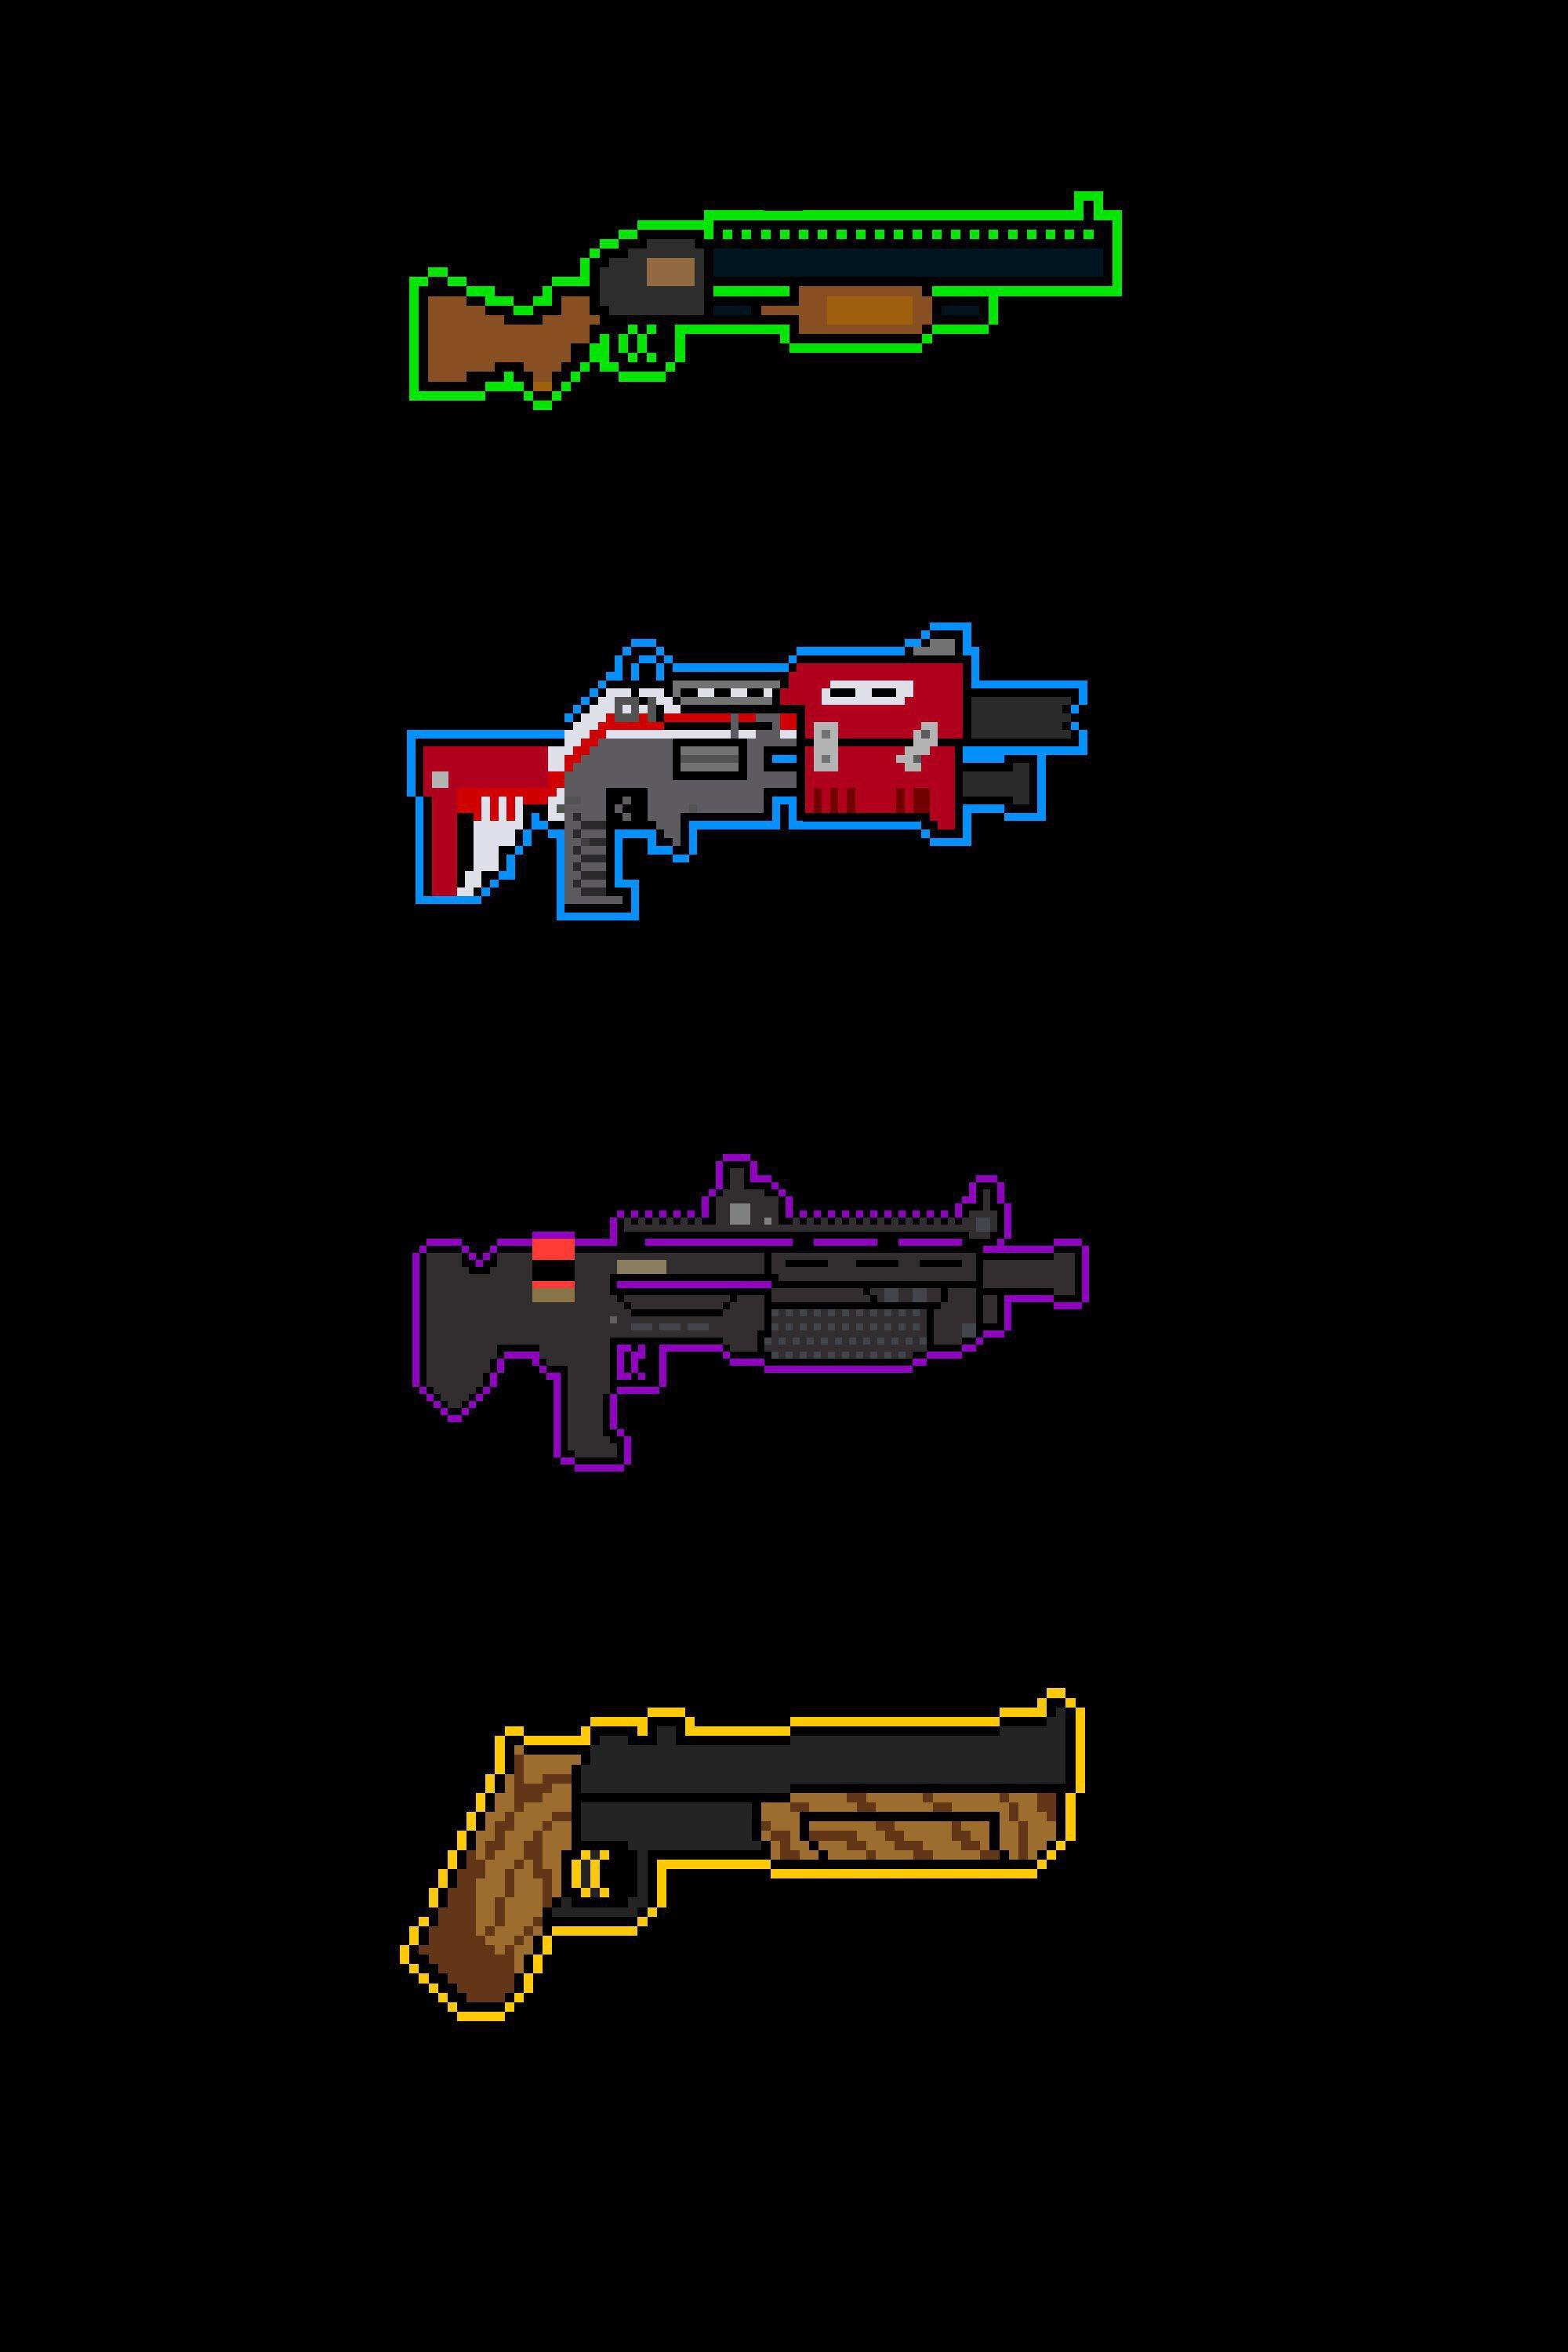 Another wallpapers with all the shotguns. PM me if you need an iPhone